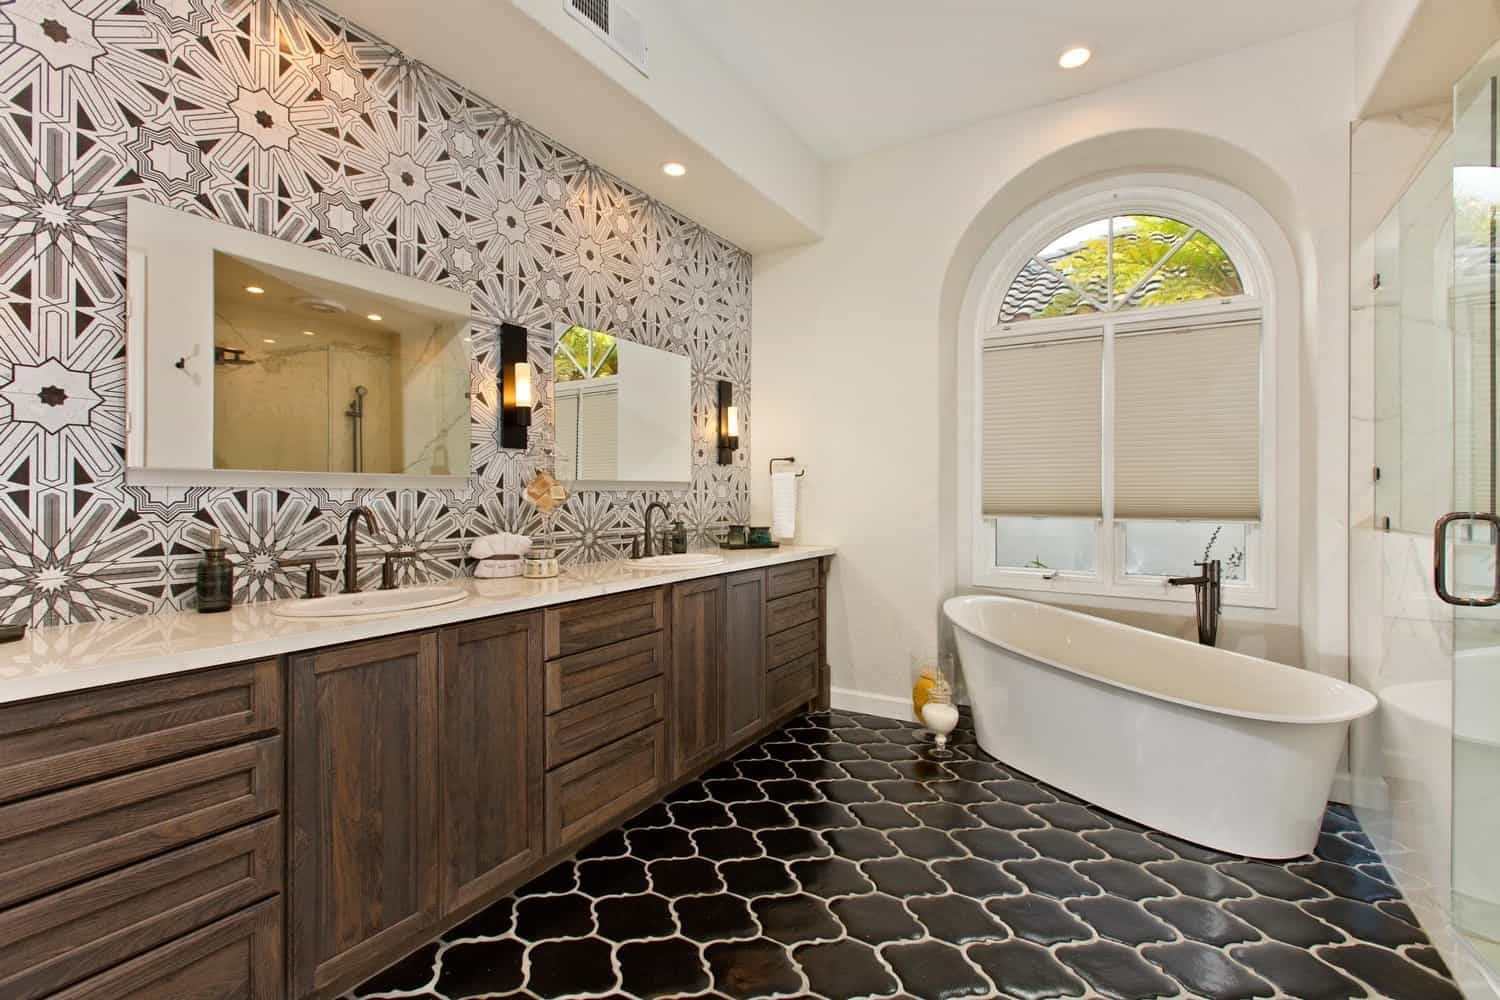 Black Tiled Bathroom Tiled Wallpaper For Bathrooms 24885 Bathroom Ideas